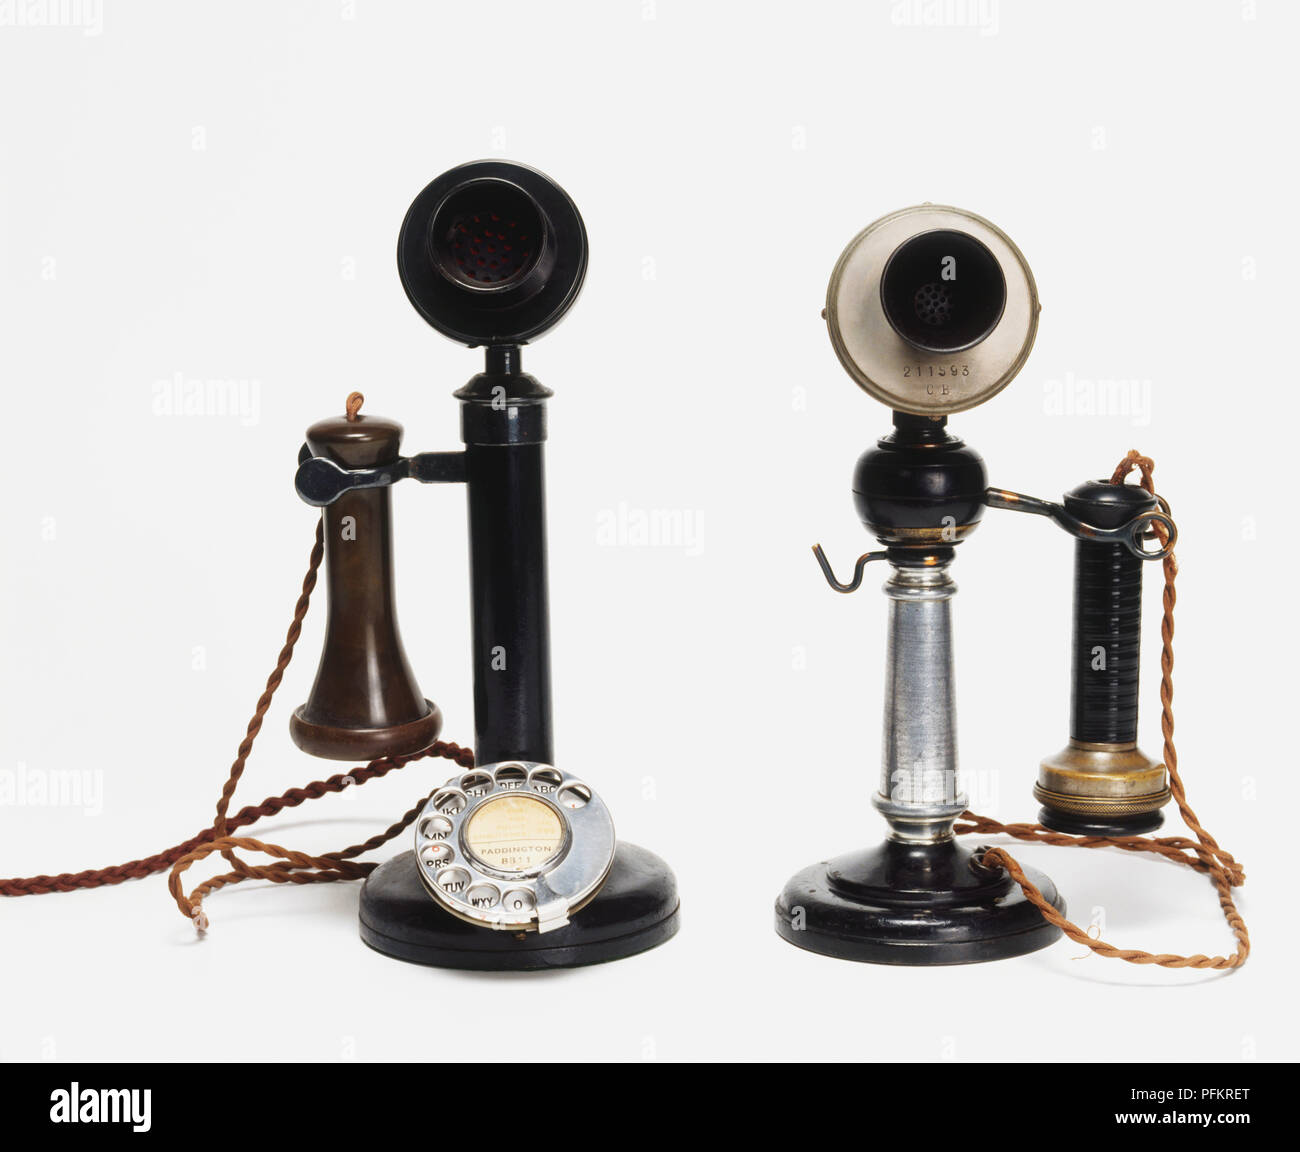 Two antique candlestick telephones, front view - Stock Image